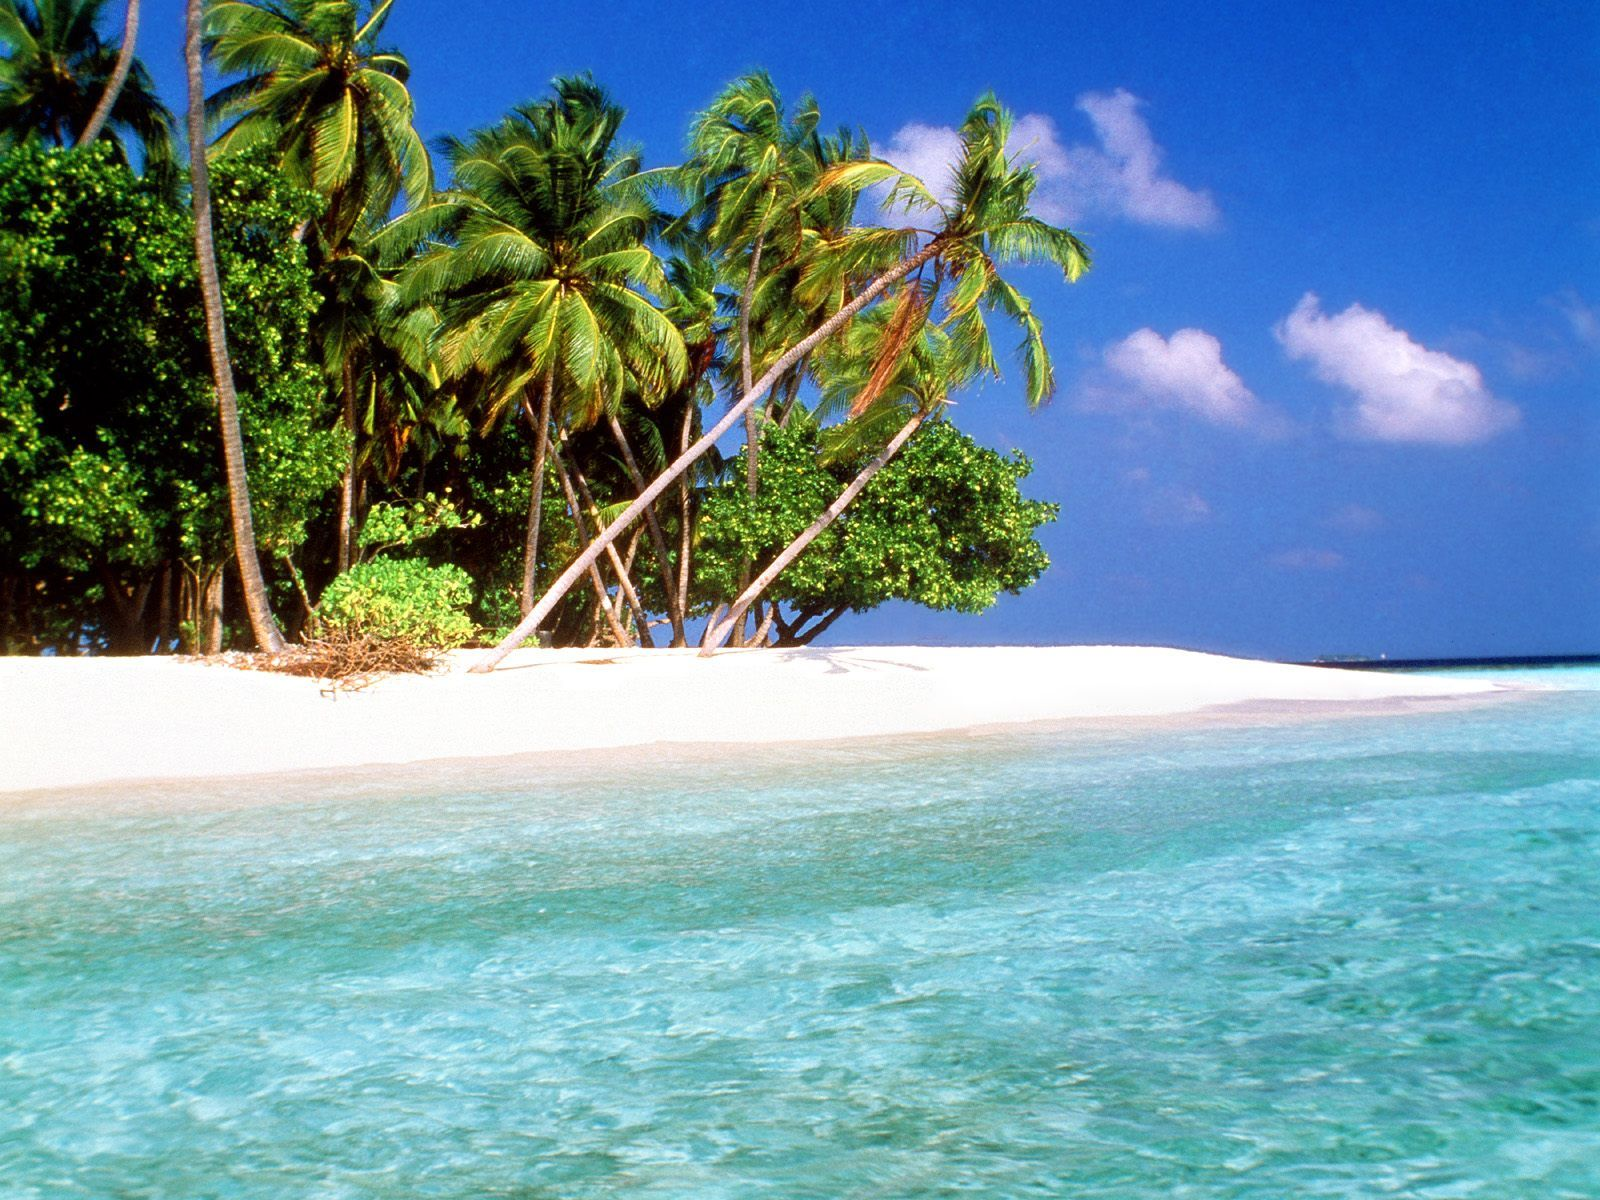 Tropical Islands Wallpapers Download Free Trade Winds Maldive Islands Wallpapers Photos Pict Beach Scenery Tropical Island Beach Tropical Islands Paradise